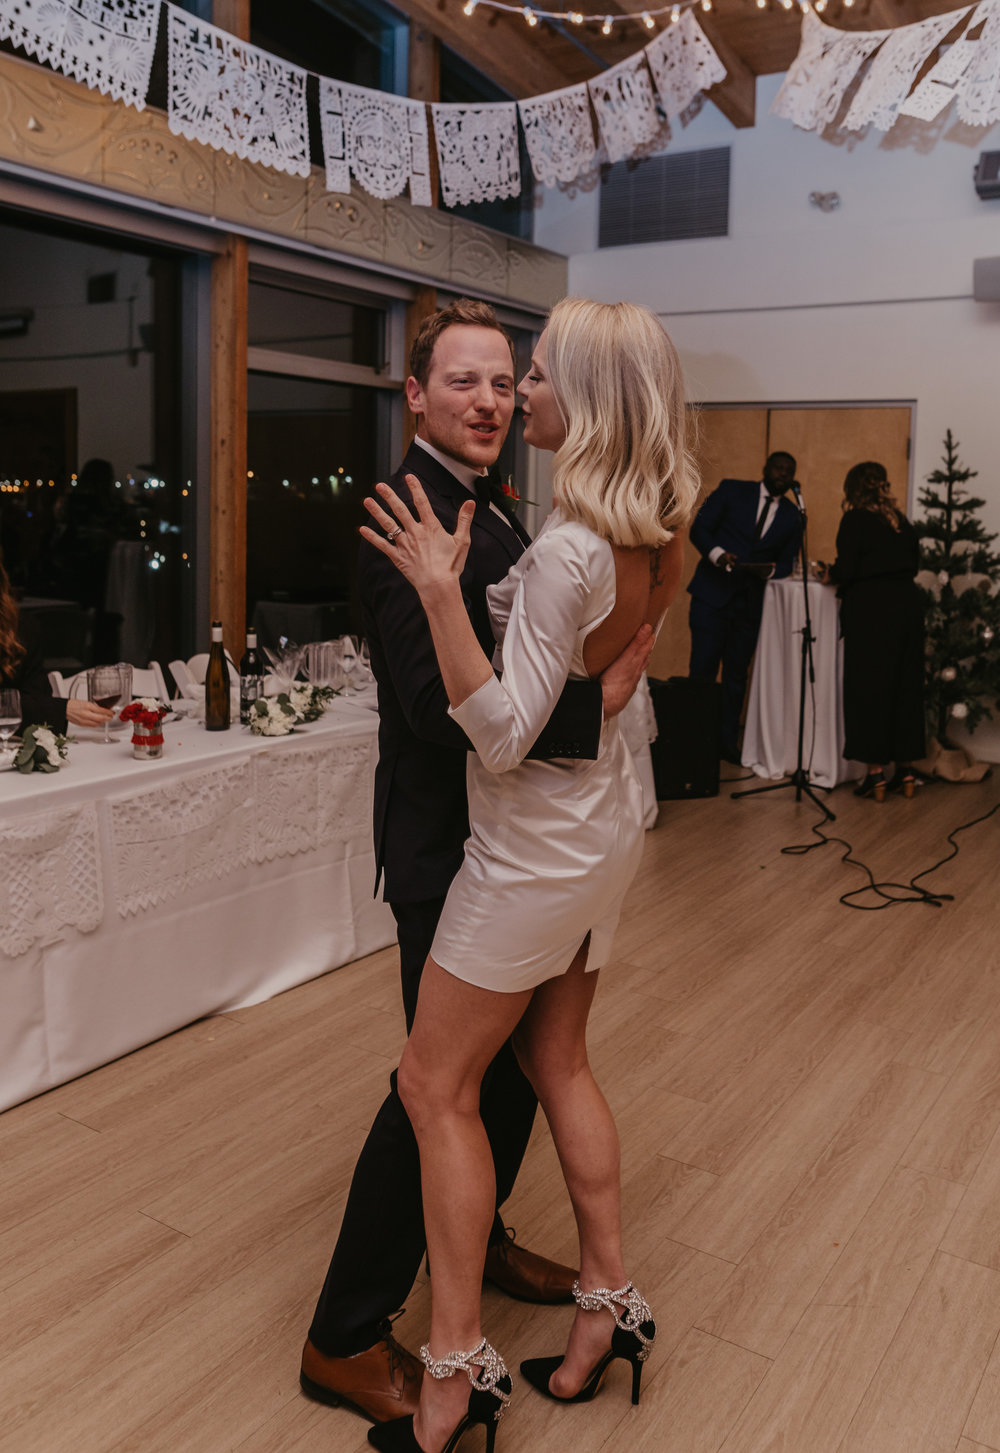 Vancouver New Years Eve Wedding - UBC Boathouse Wedding - Kitsilano Wedding Photos - Vancouver Wedding Photographer - Vancouver Wedding Videographer - 871.JPG